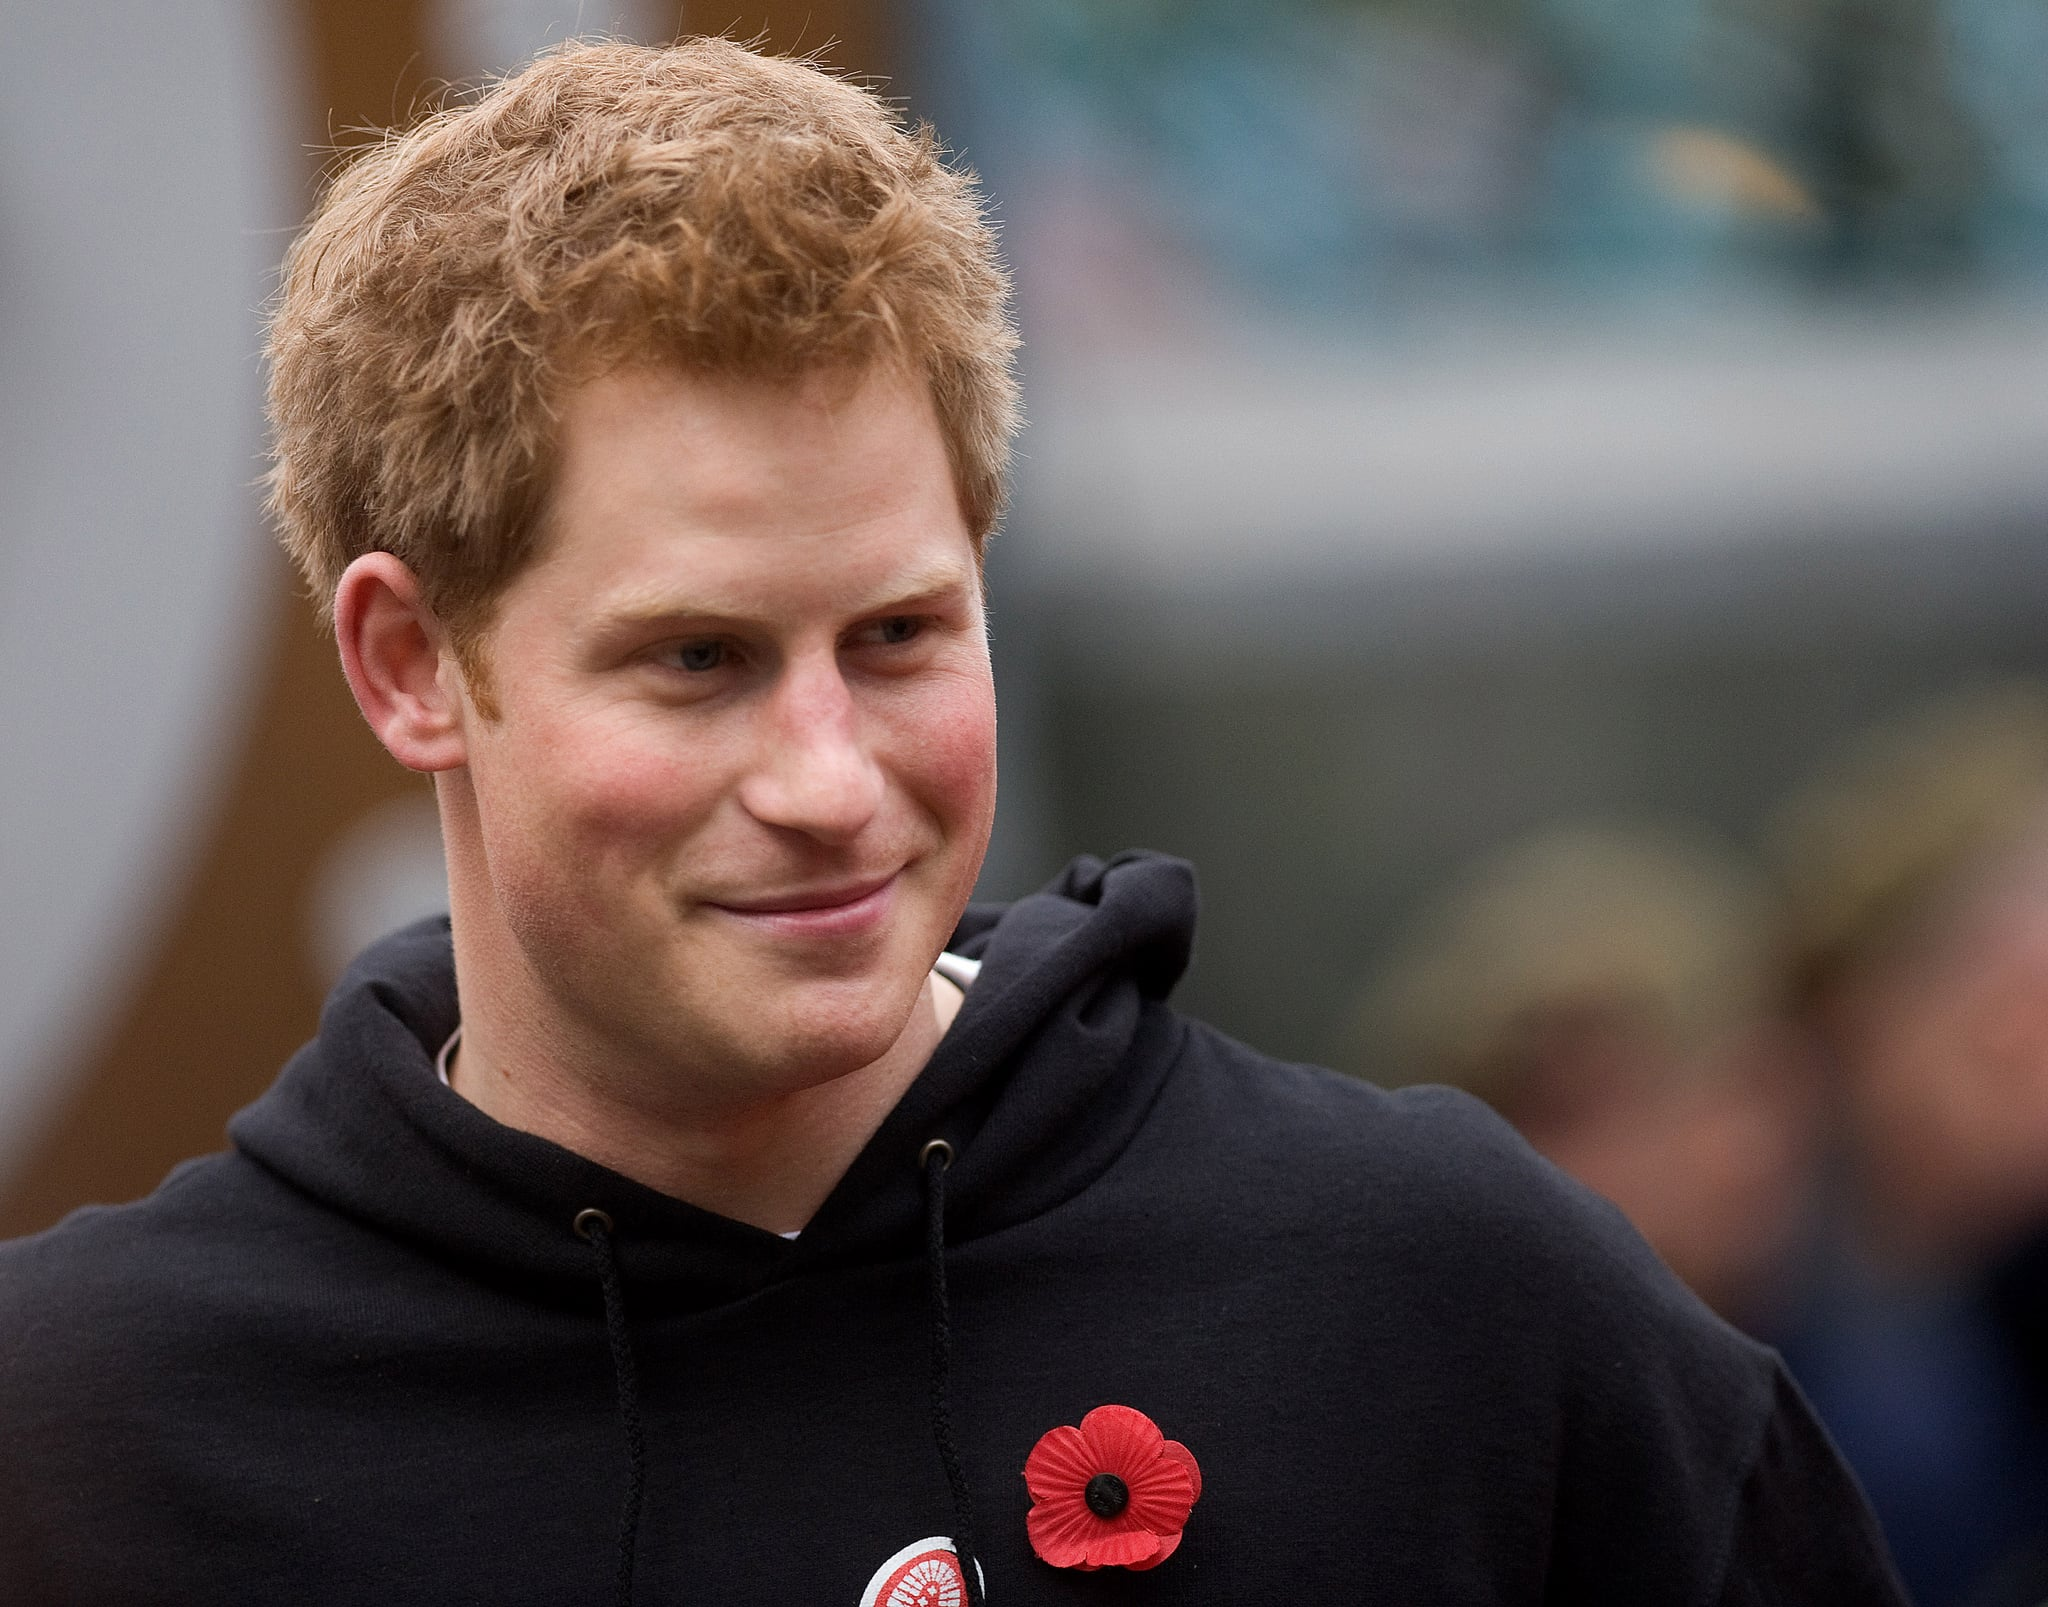 Prince Harry attended the launch of the Soldier Challenge 2011 in London.